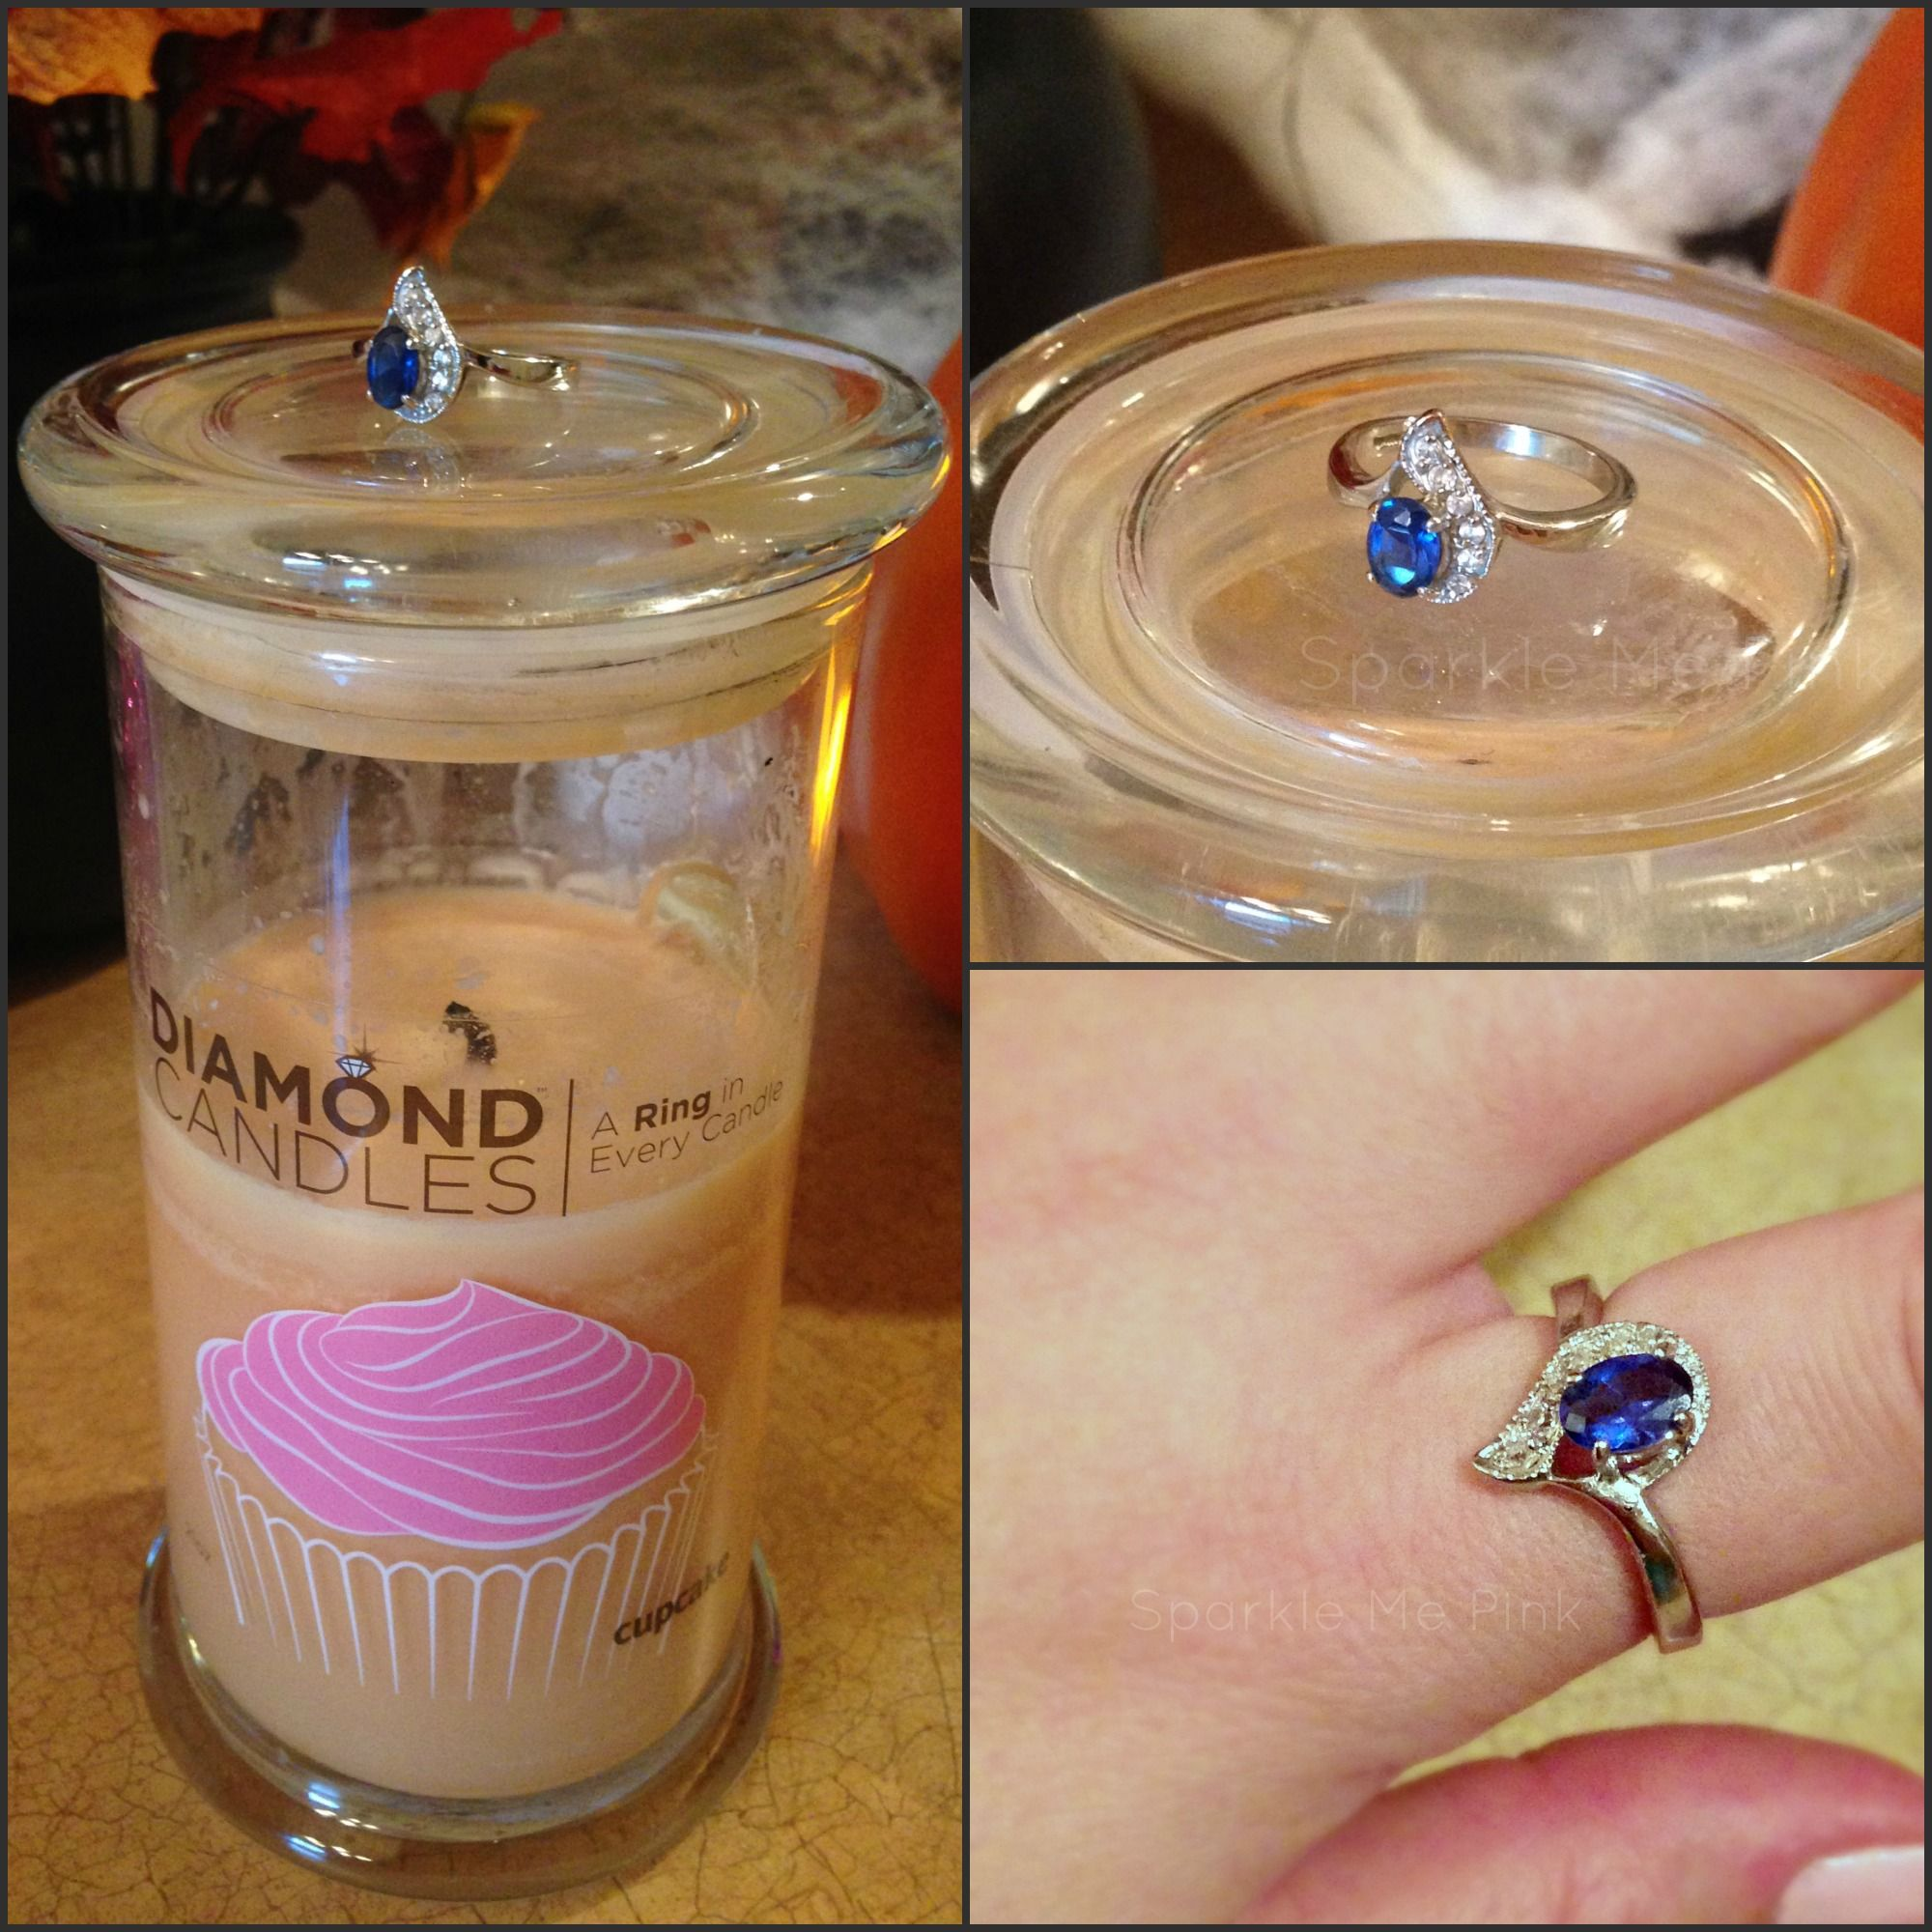 Candles With Gifts Inside Diamond Candle Ring Reveal Diamond Candels 31 Bags